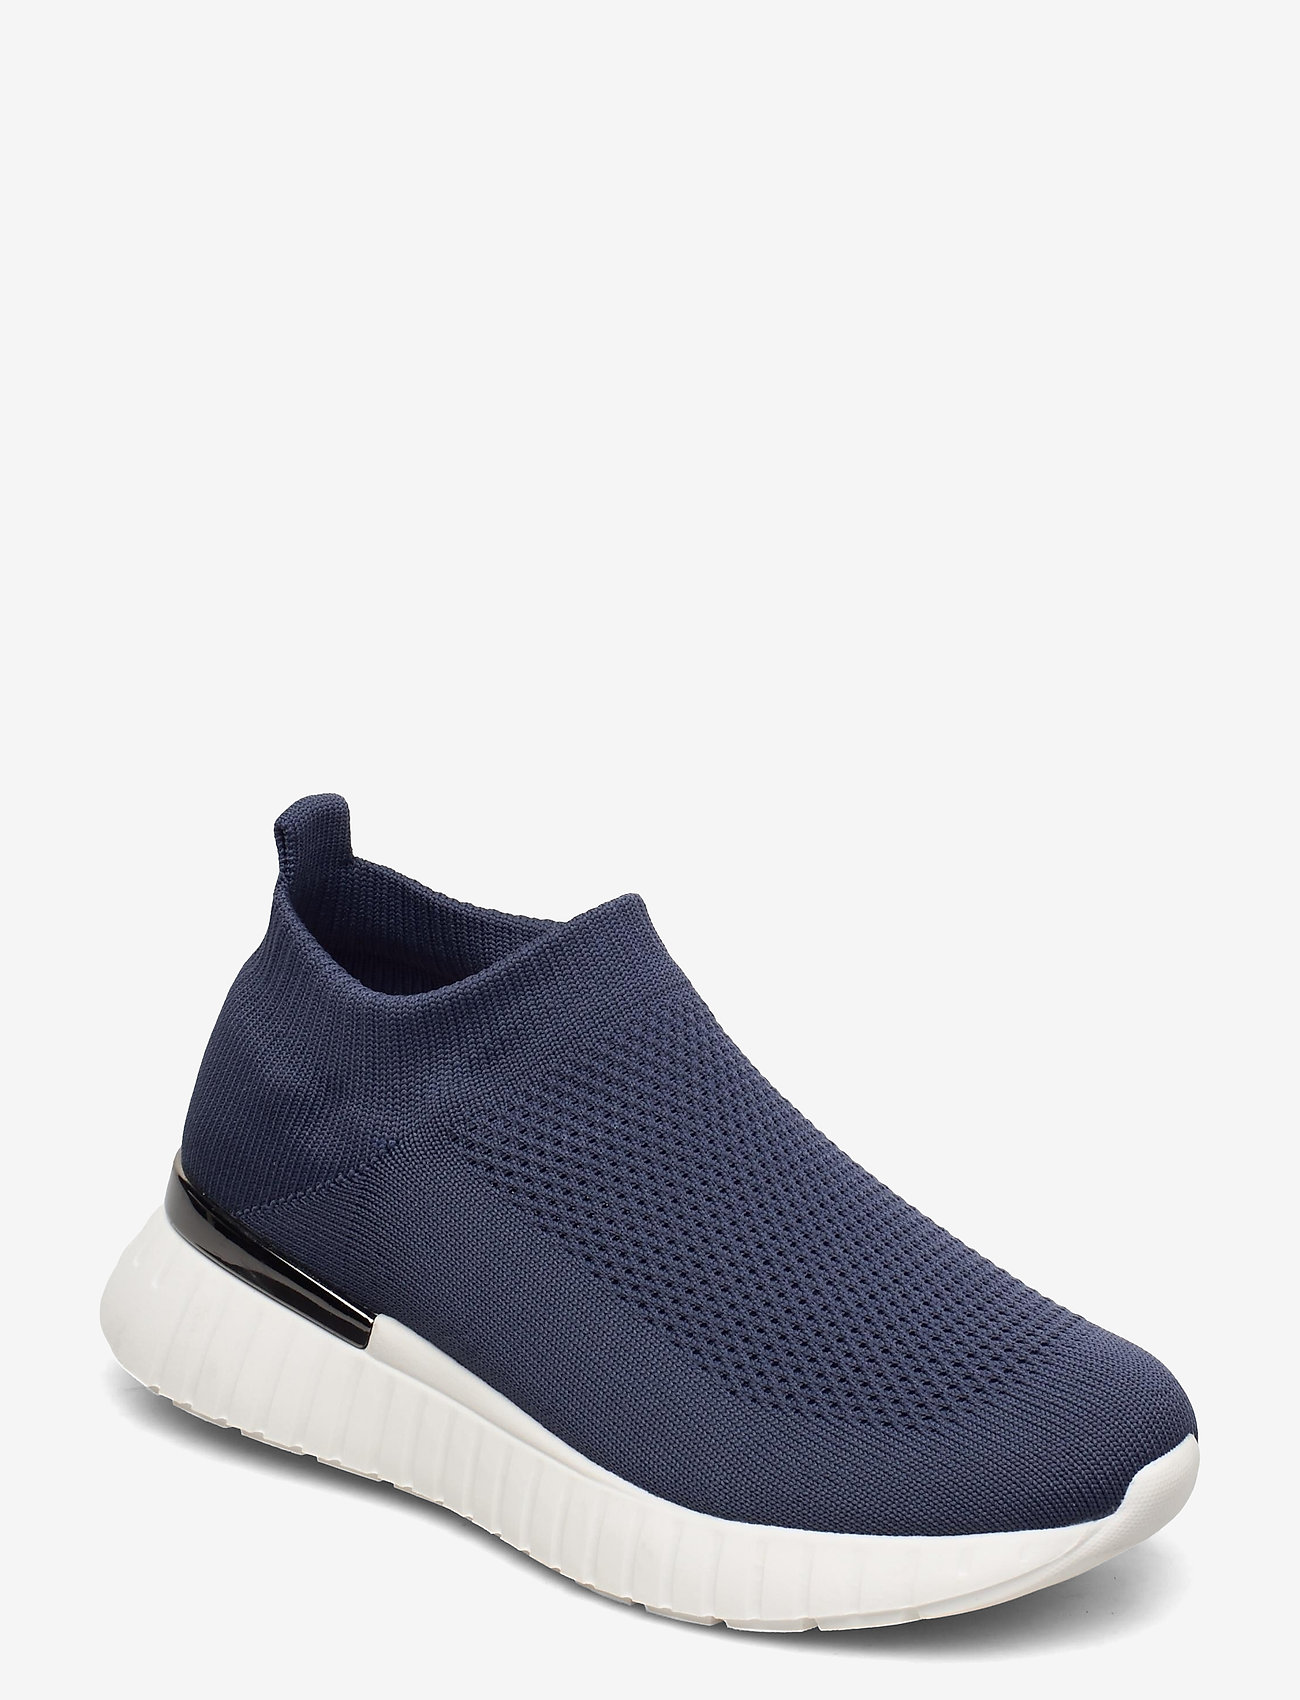 Ilse Jacobsen - Sneakers - slip-on sneakers - orion blue - 0